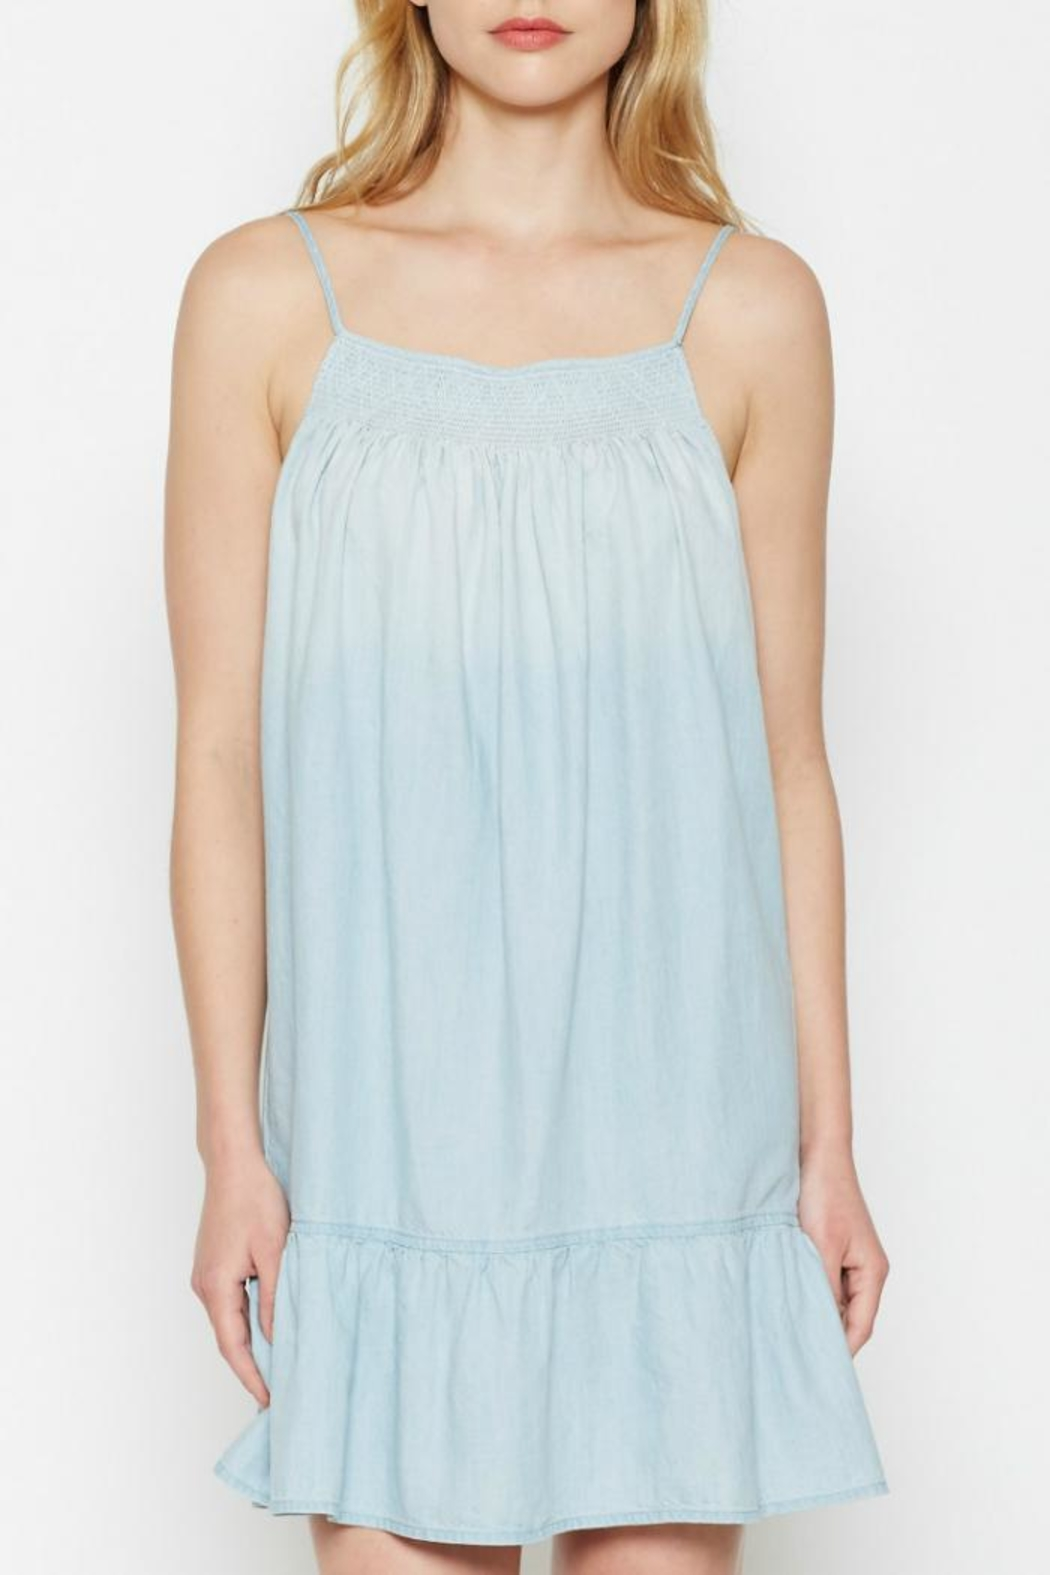 Joie Kunala Chambray Dress - Main Image